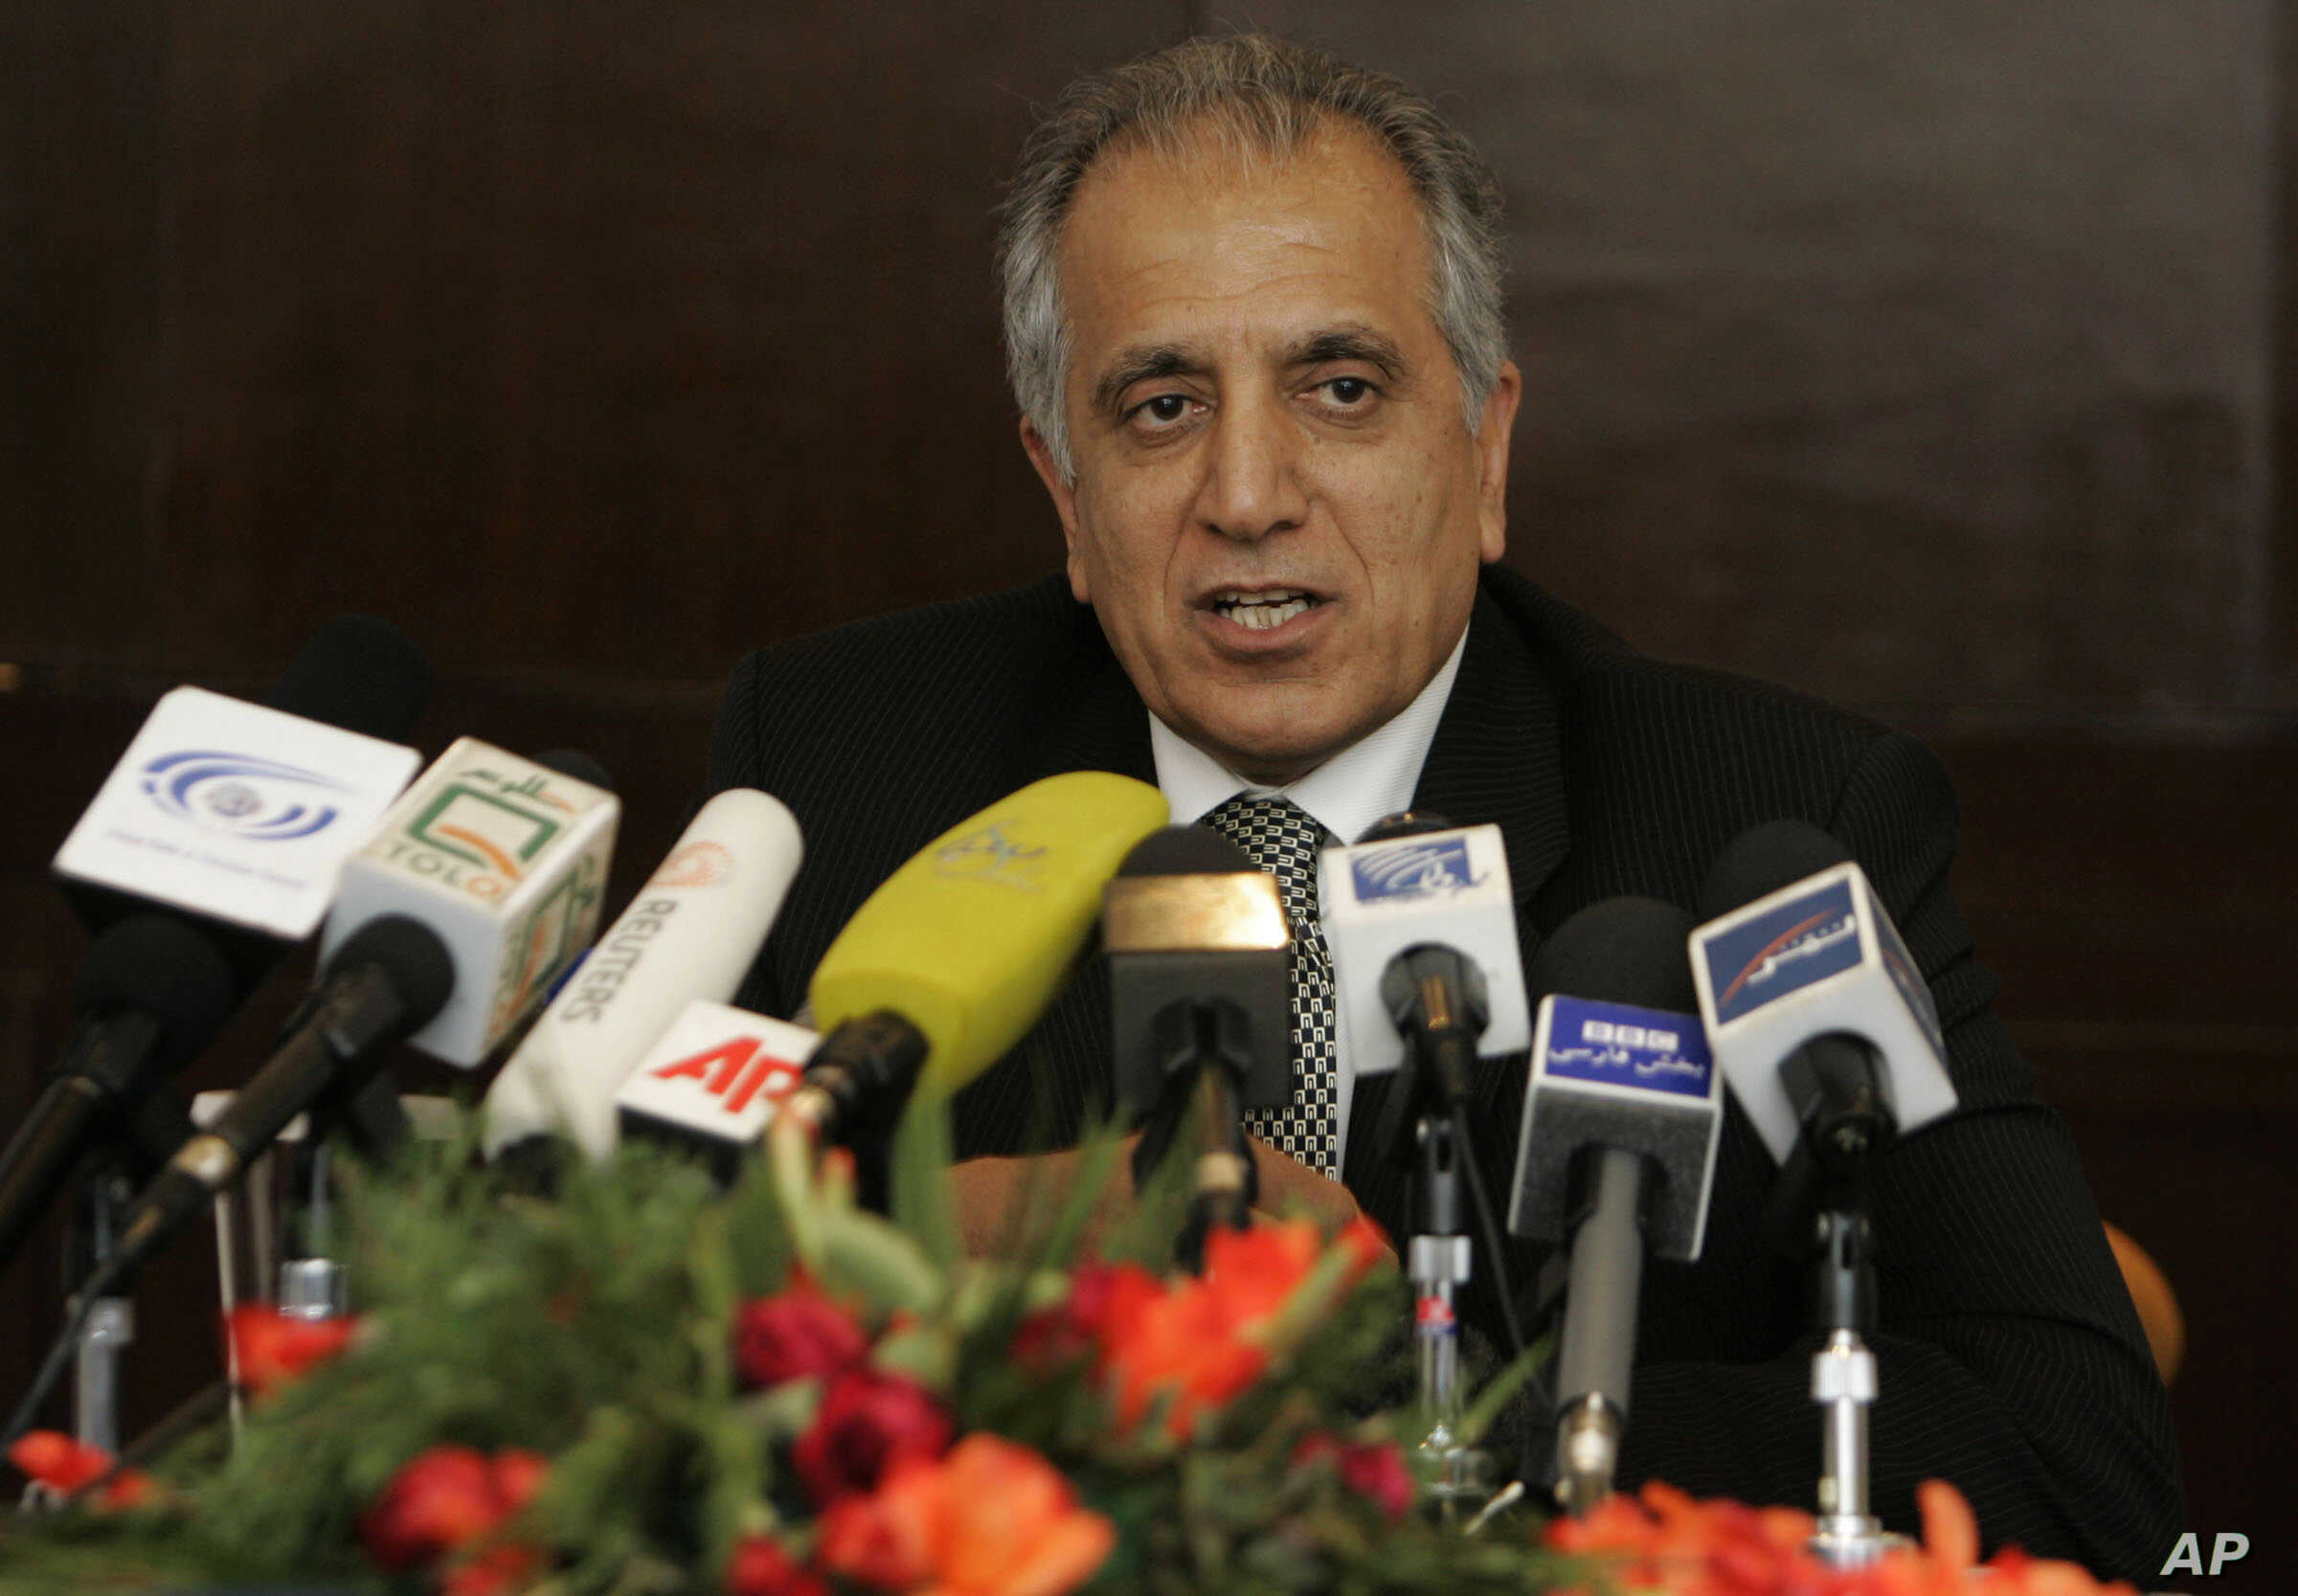 FILE - Zalmay Khalilzad, seen in this March 2009 file photo, has been named a U.S. special envoy to Afghanistan.